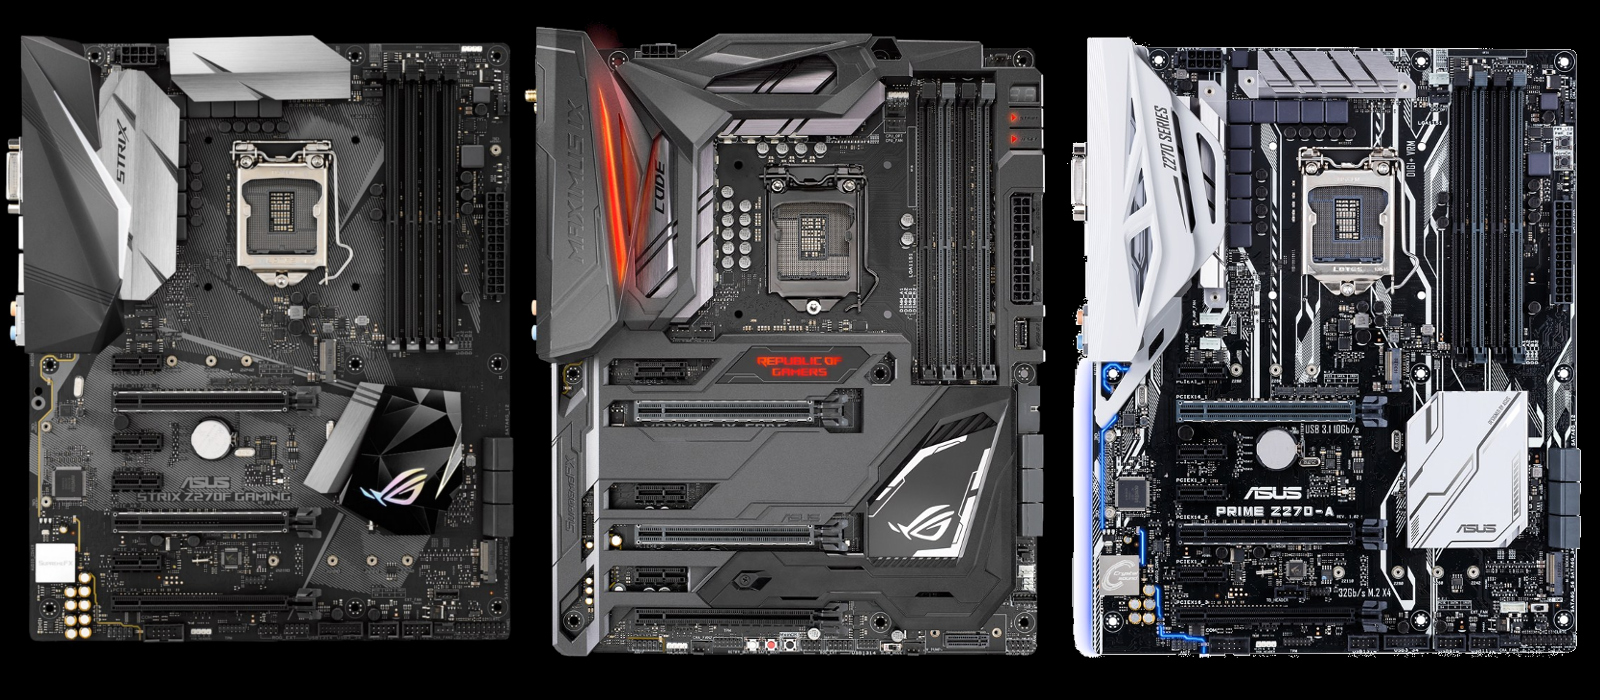 Asus's new motherboards, from right to left - the Z270-A, the Maximus IX CODE and the Z270F STRIX